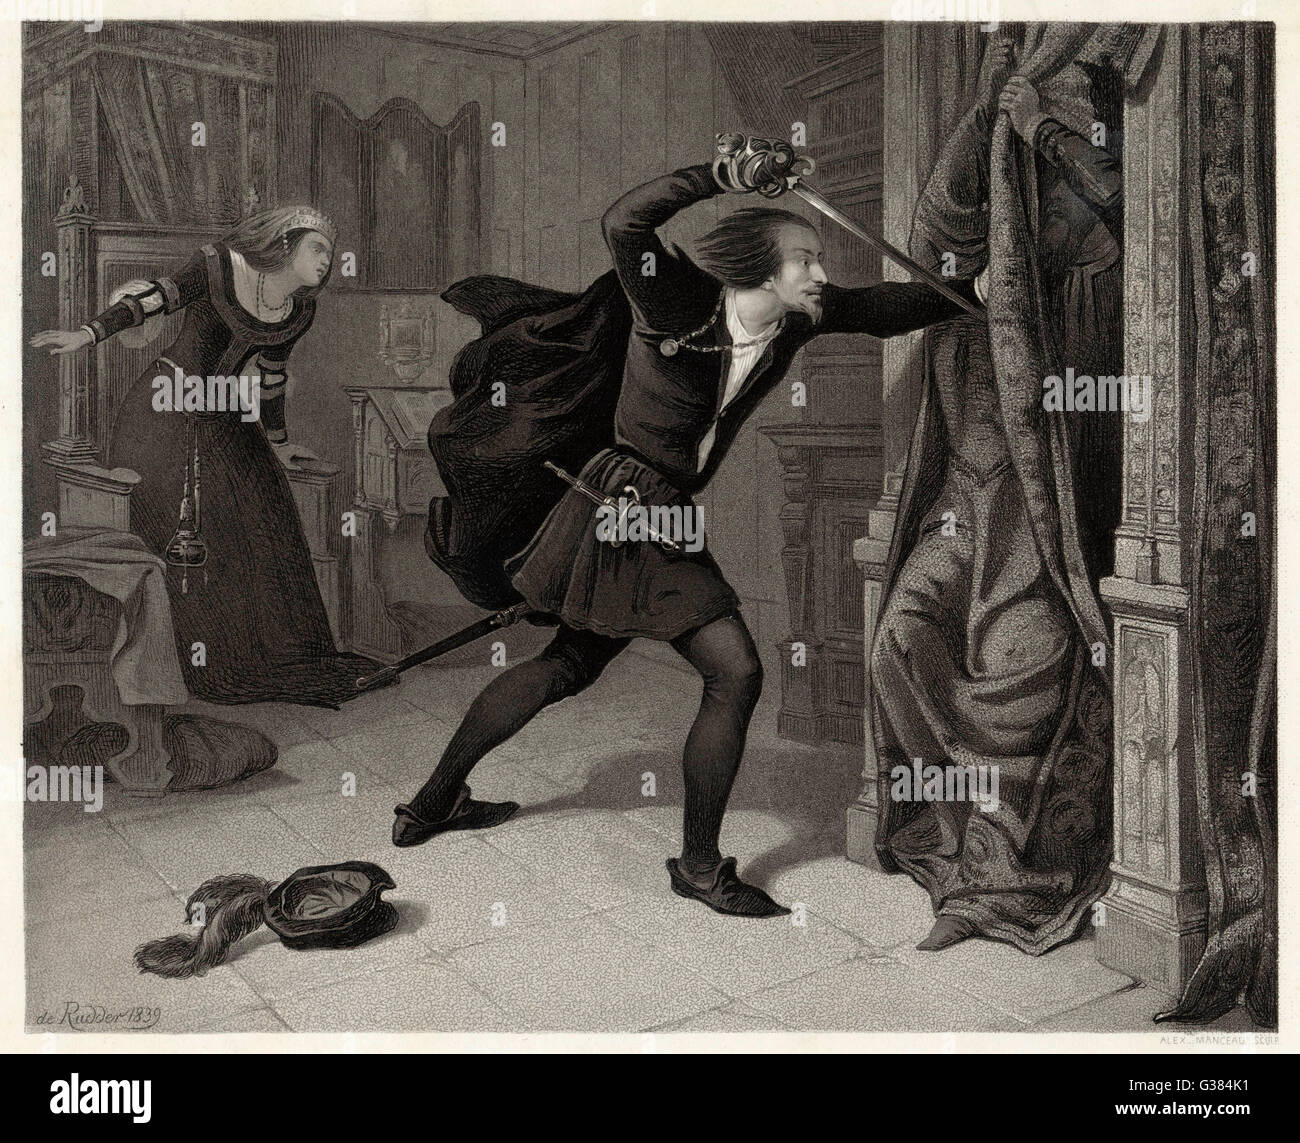 While talking with his mother,  Hamlet detects an intruder  hiding behind a curtain : he  stabs him, only to find - Stock Image